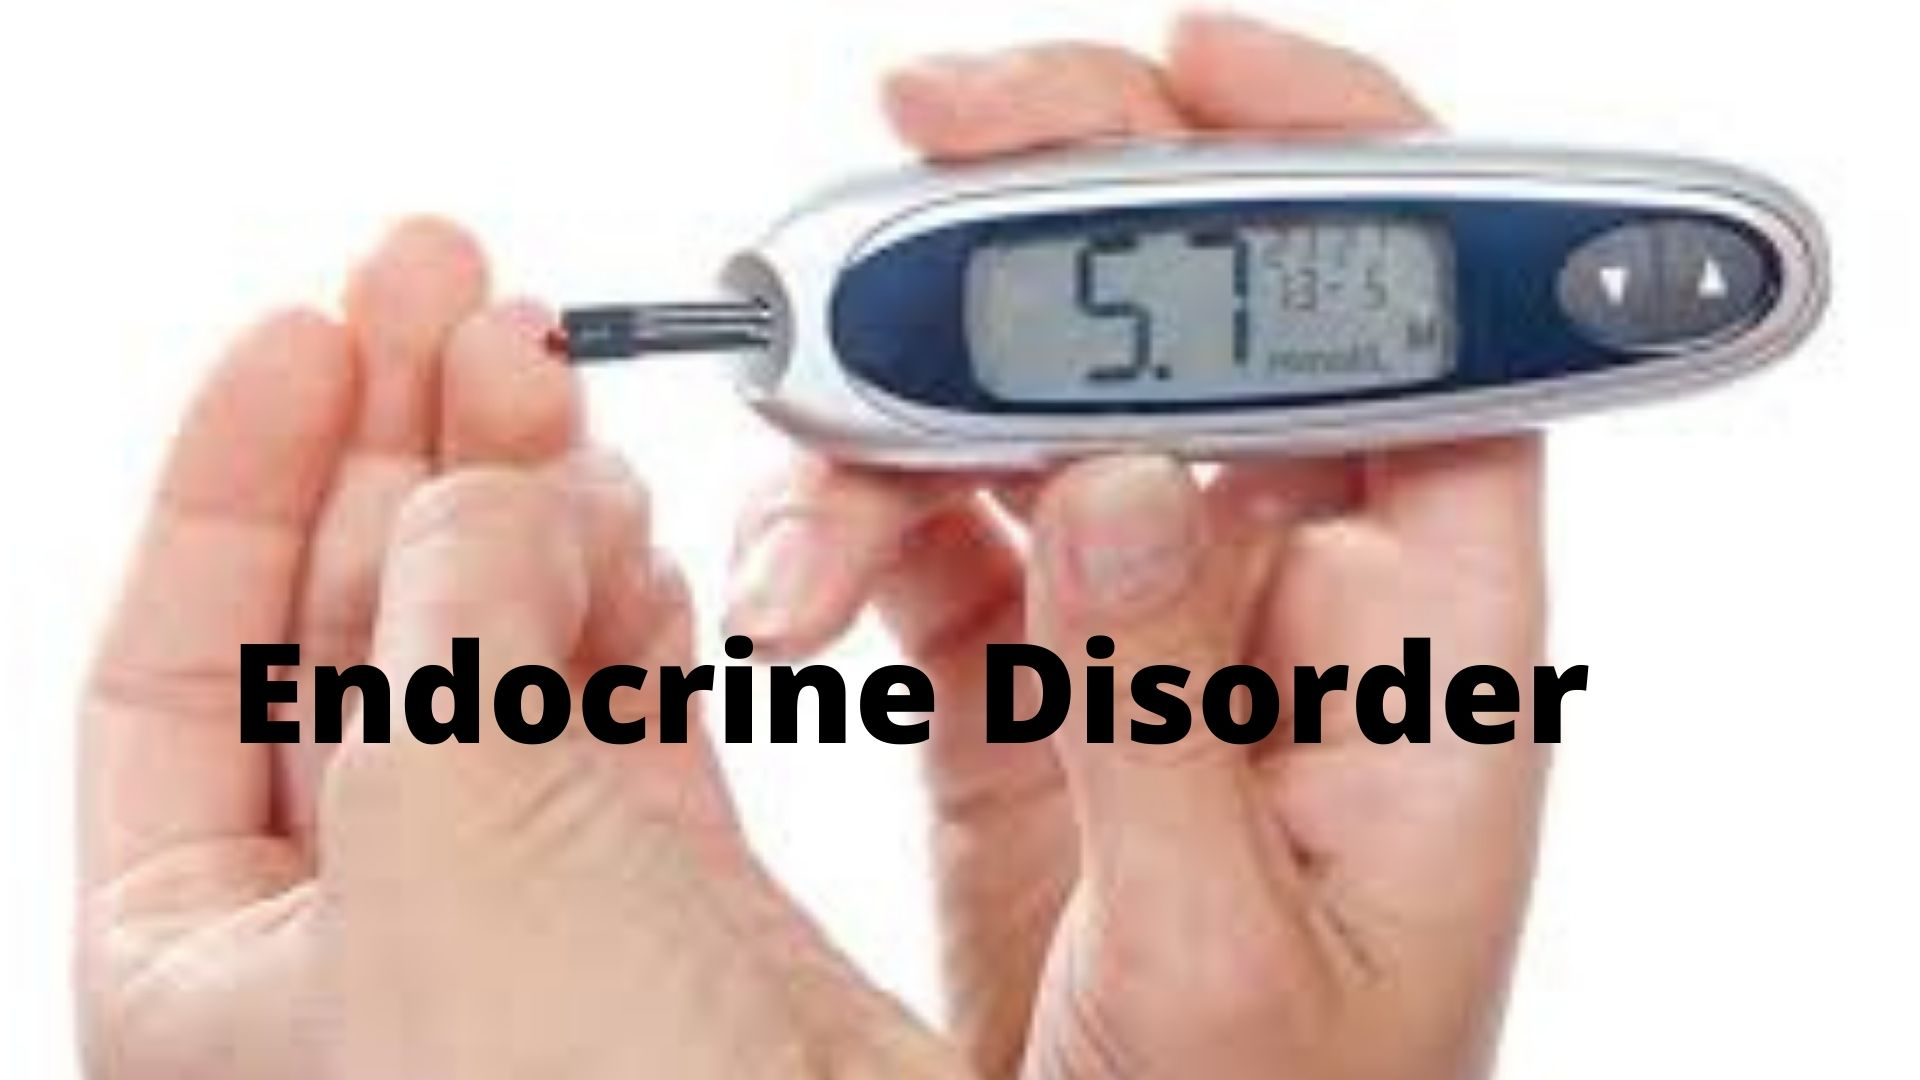 Endocrine Disorder Photo